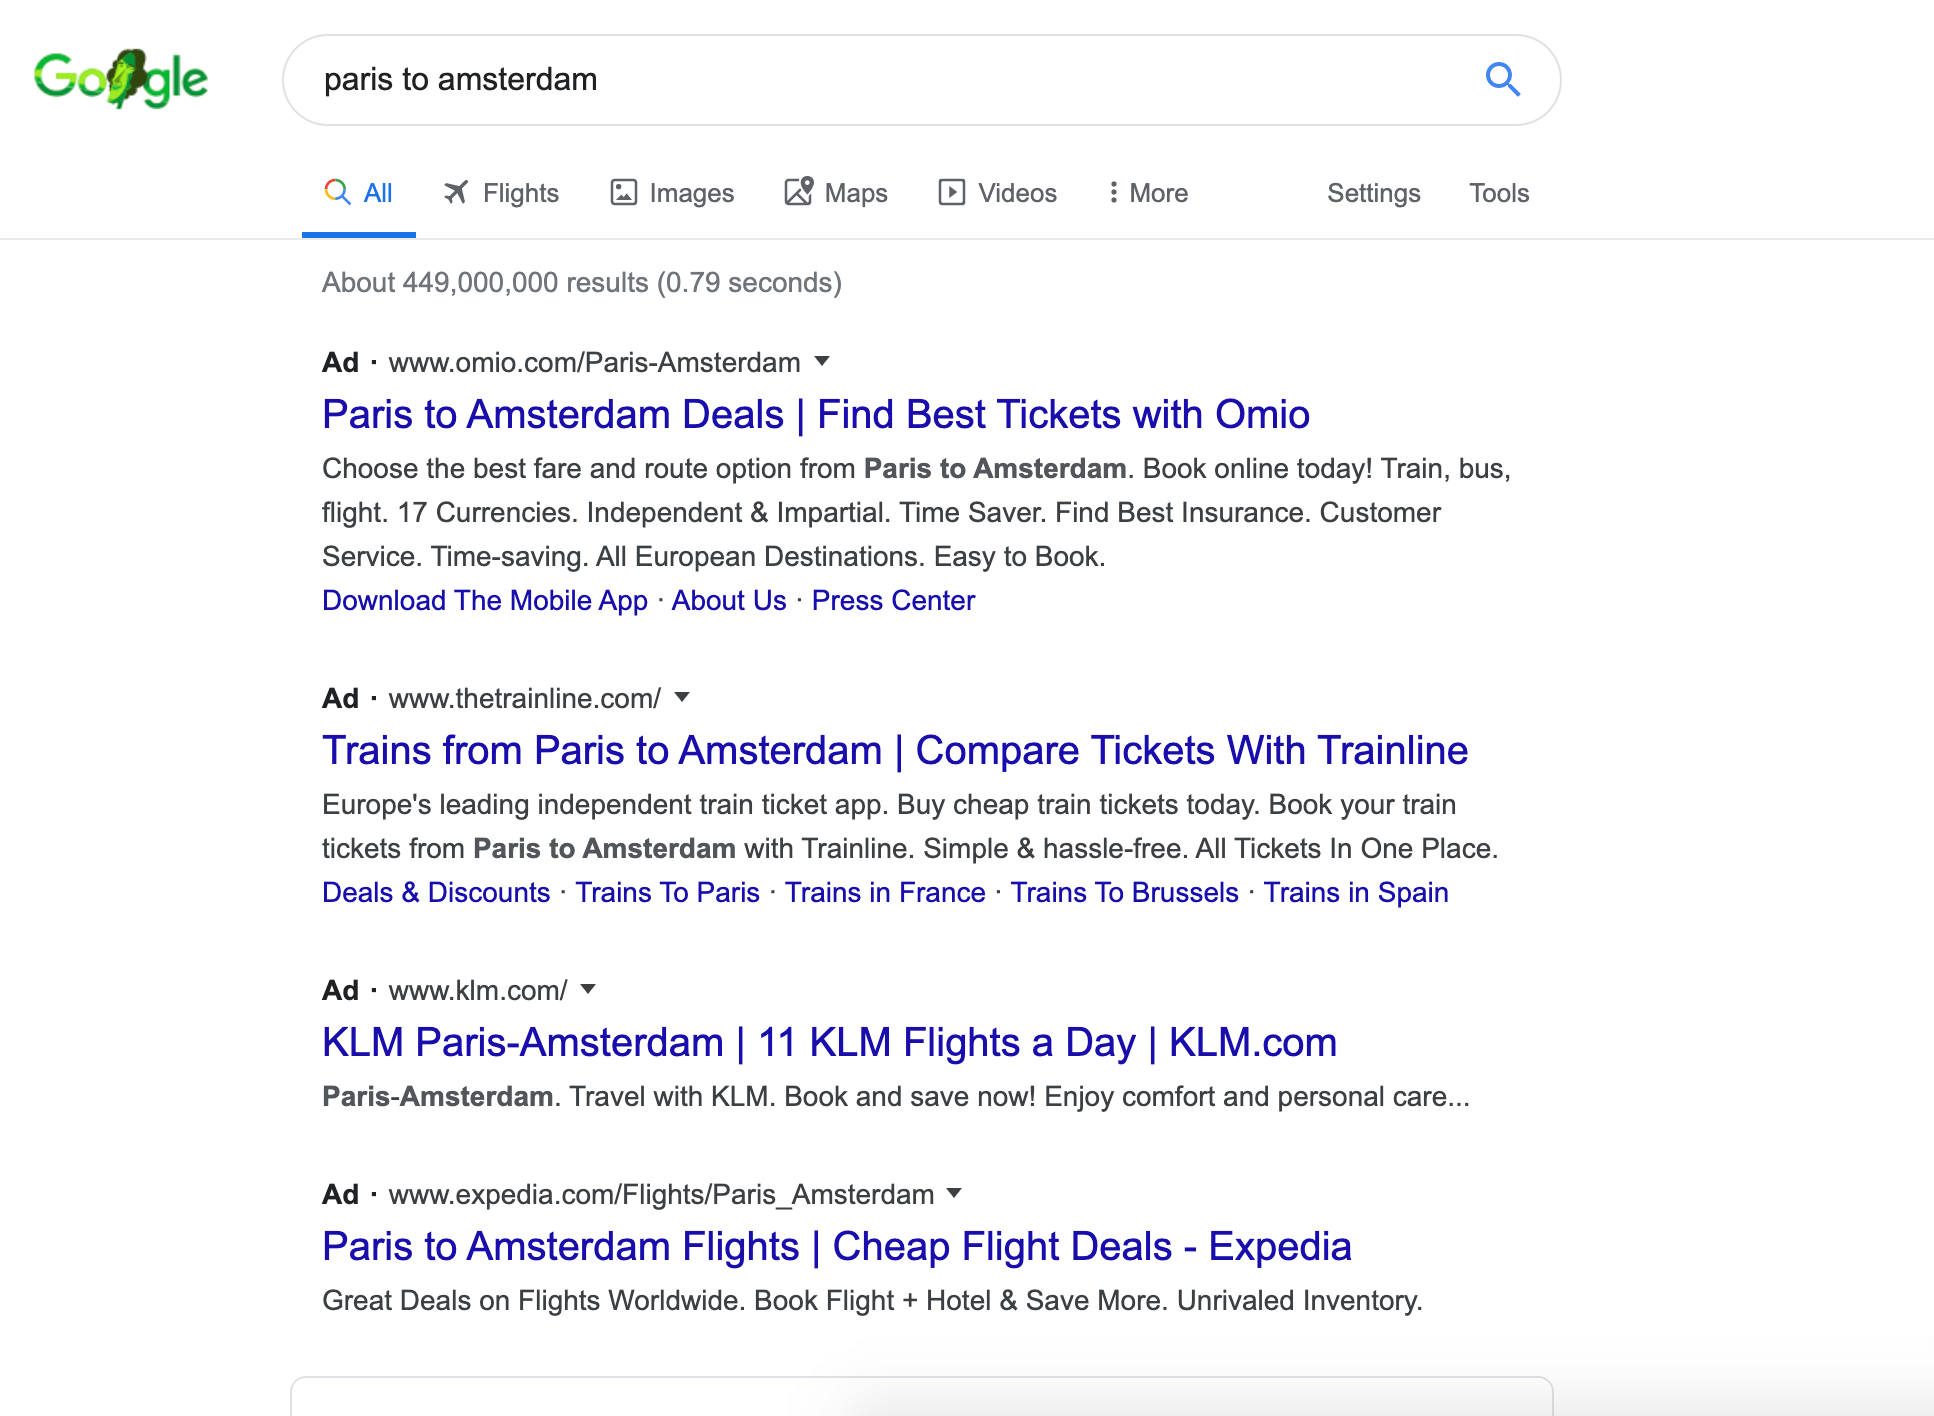 Google updated look of search results makes ads less obvious